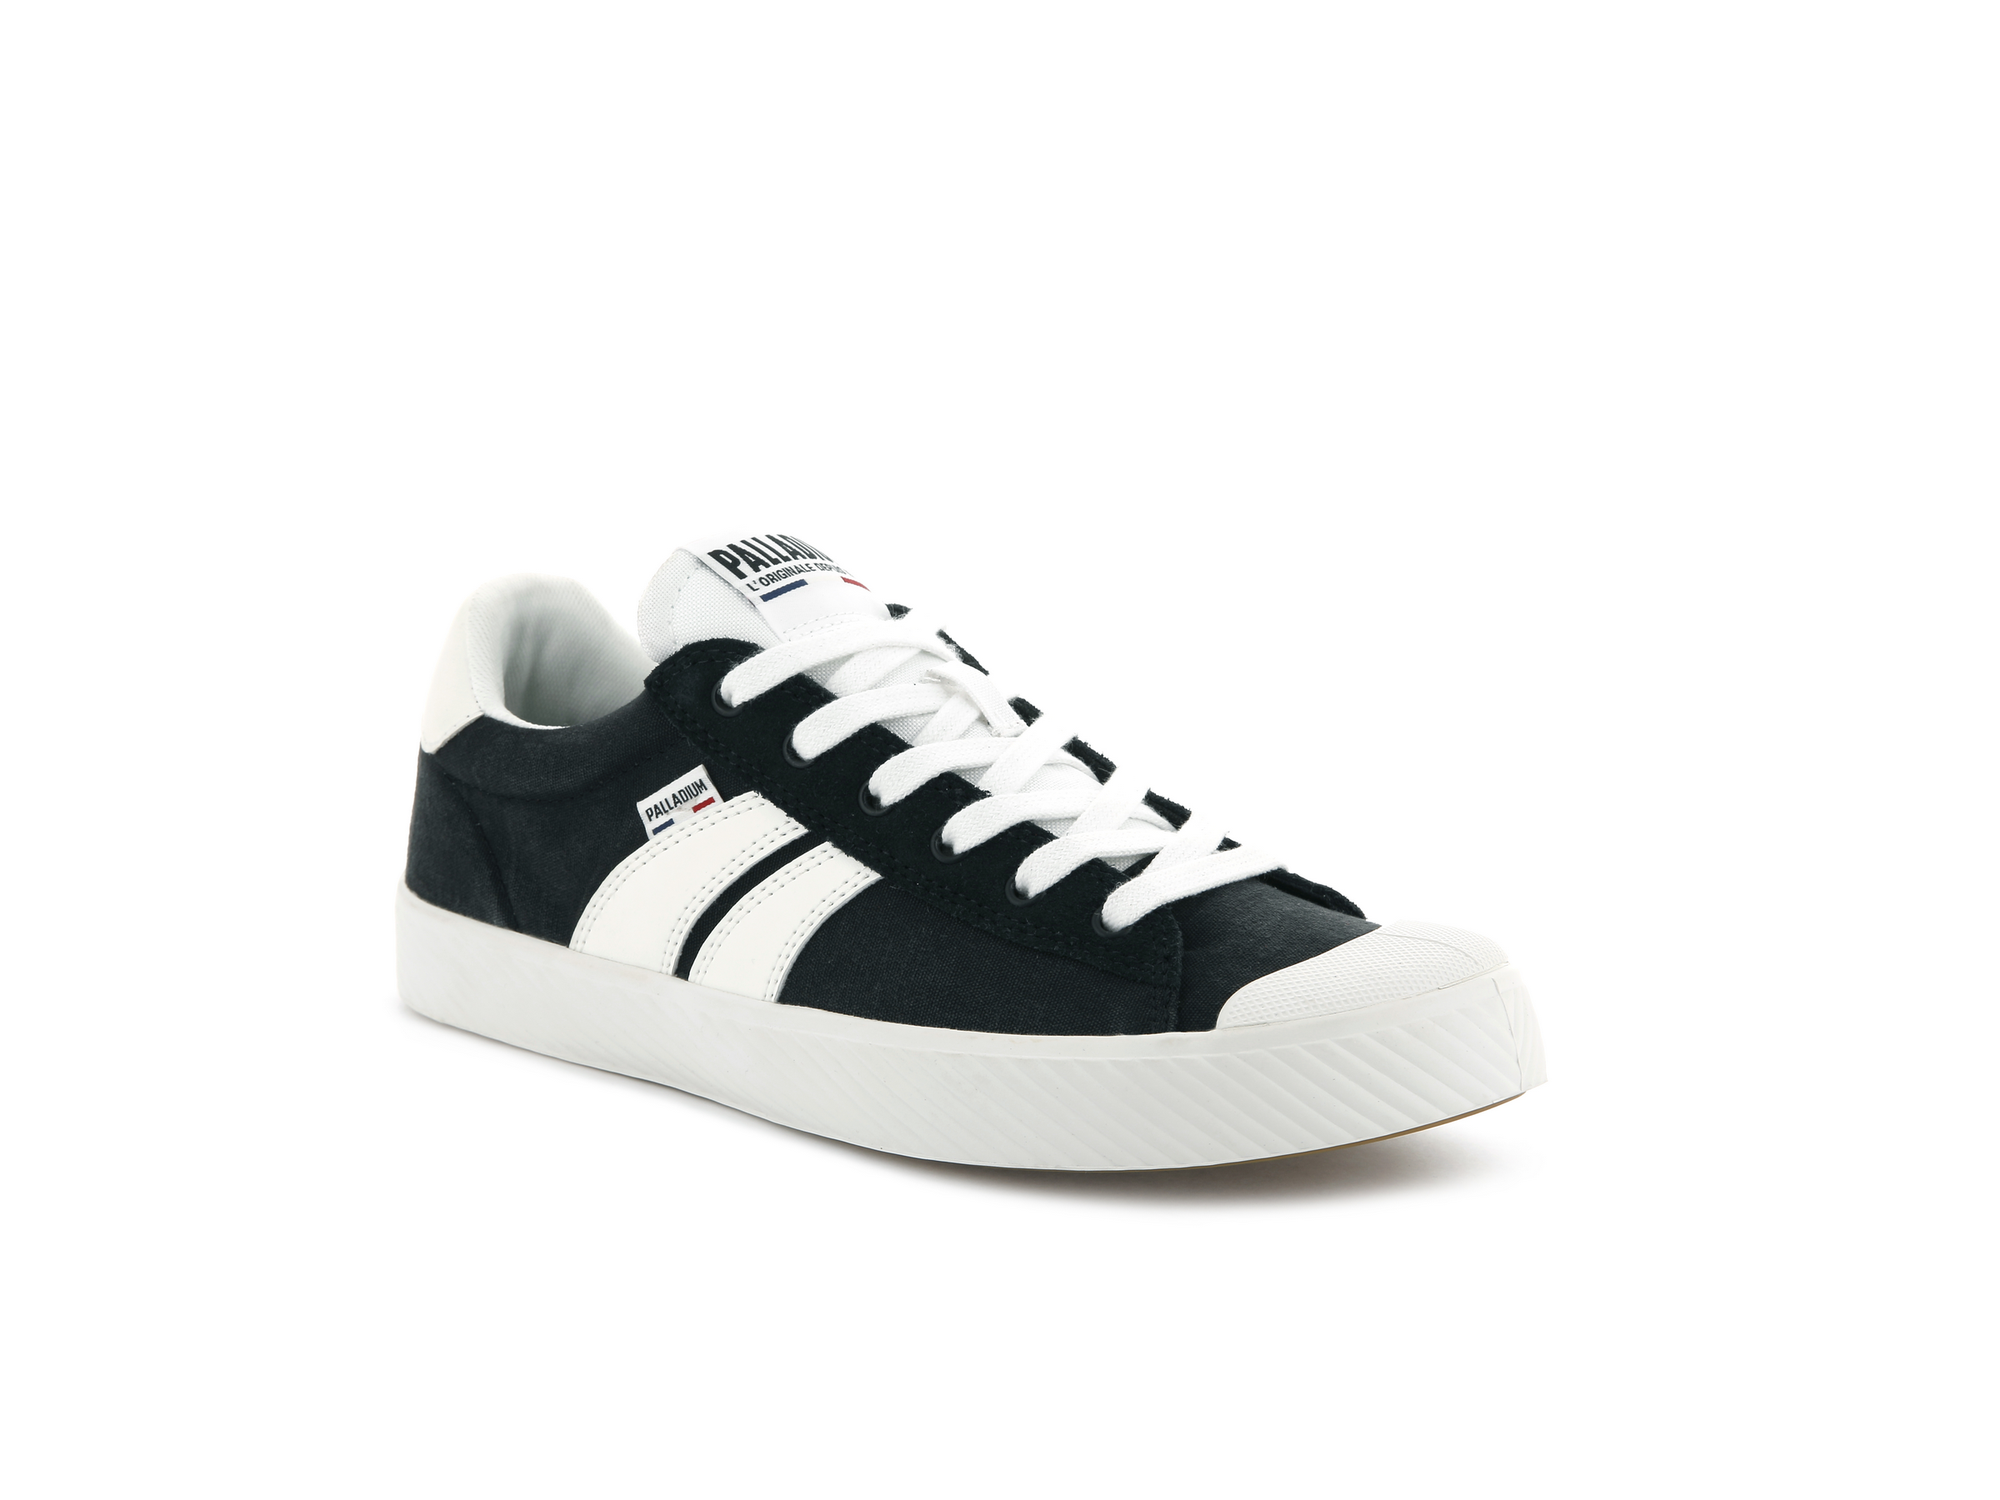 Palladium Pallaphoenix flame sneakers - €69.95 - Bringing the classic Palladium sport style to the modern streets, the iconic flame branding on these soft canvas lo-top trainers is complemented by the suede eyestay for a retro look.